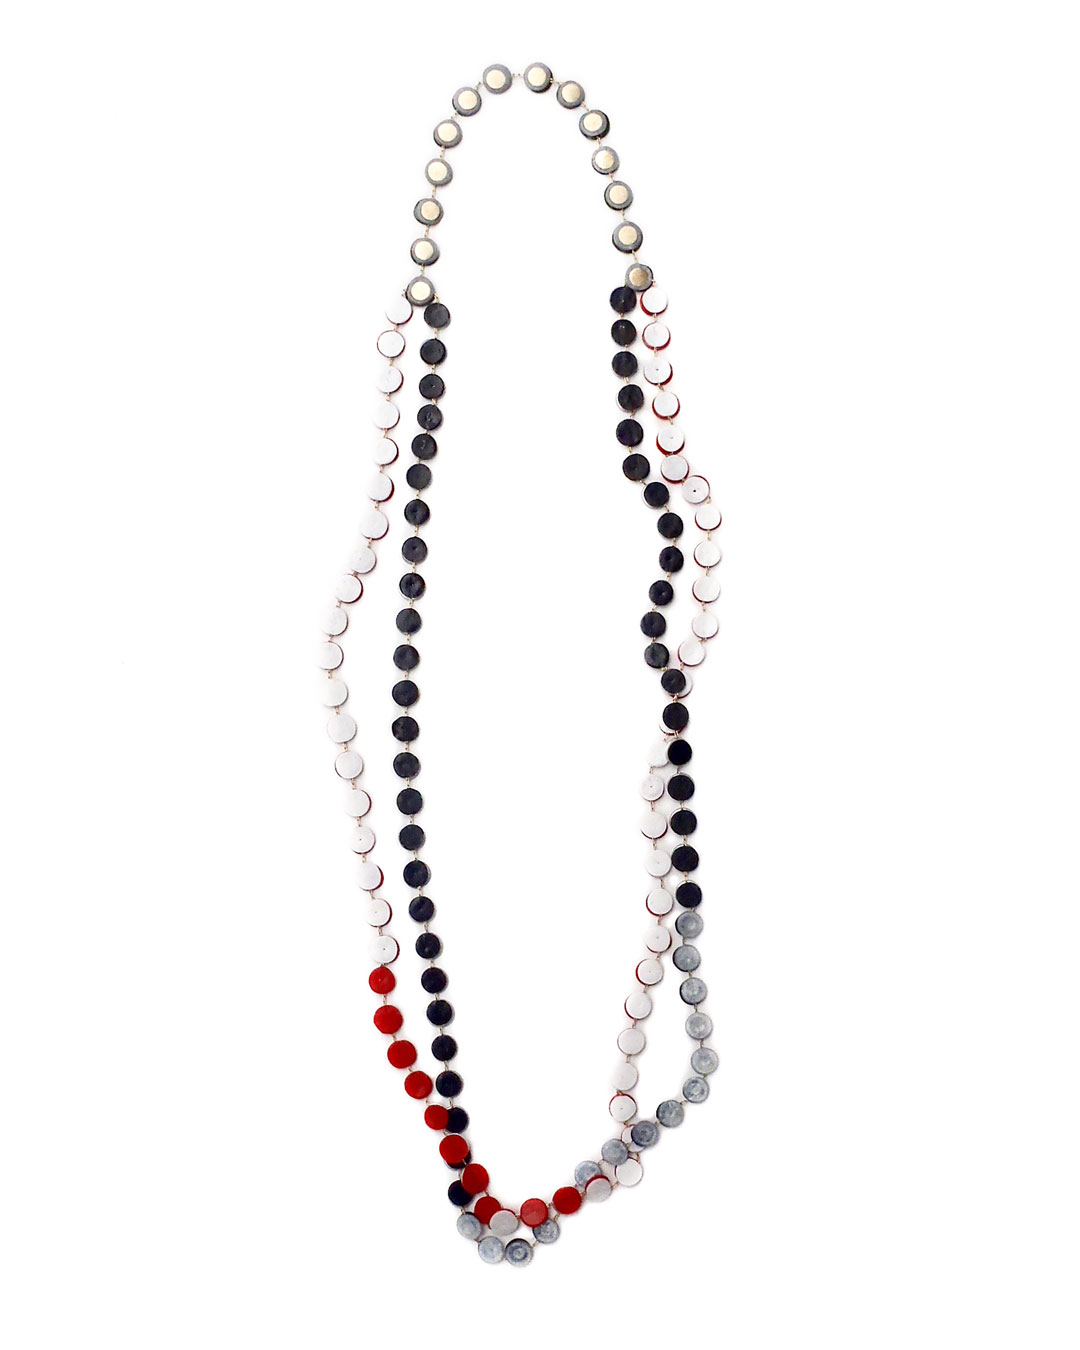 Karola Torkos, Small Changeable, 2018, necklace; plastic, silver, 490 x 50 x 2 mm, €540